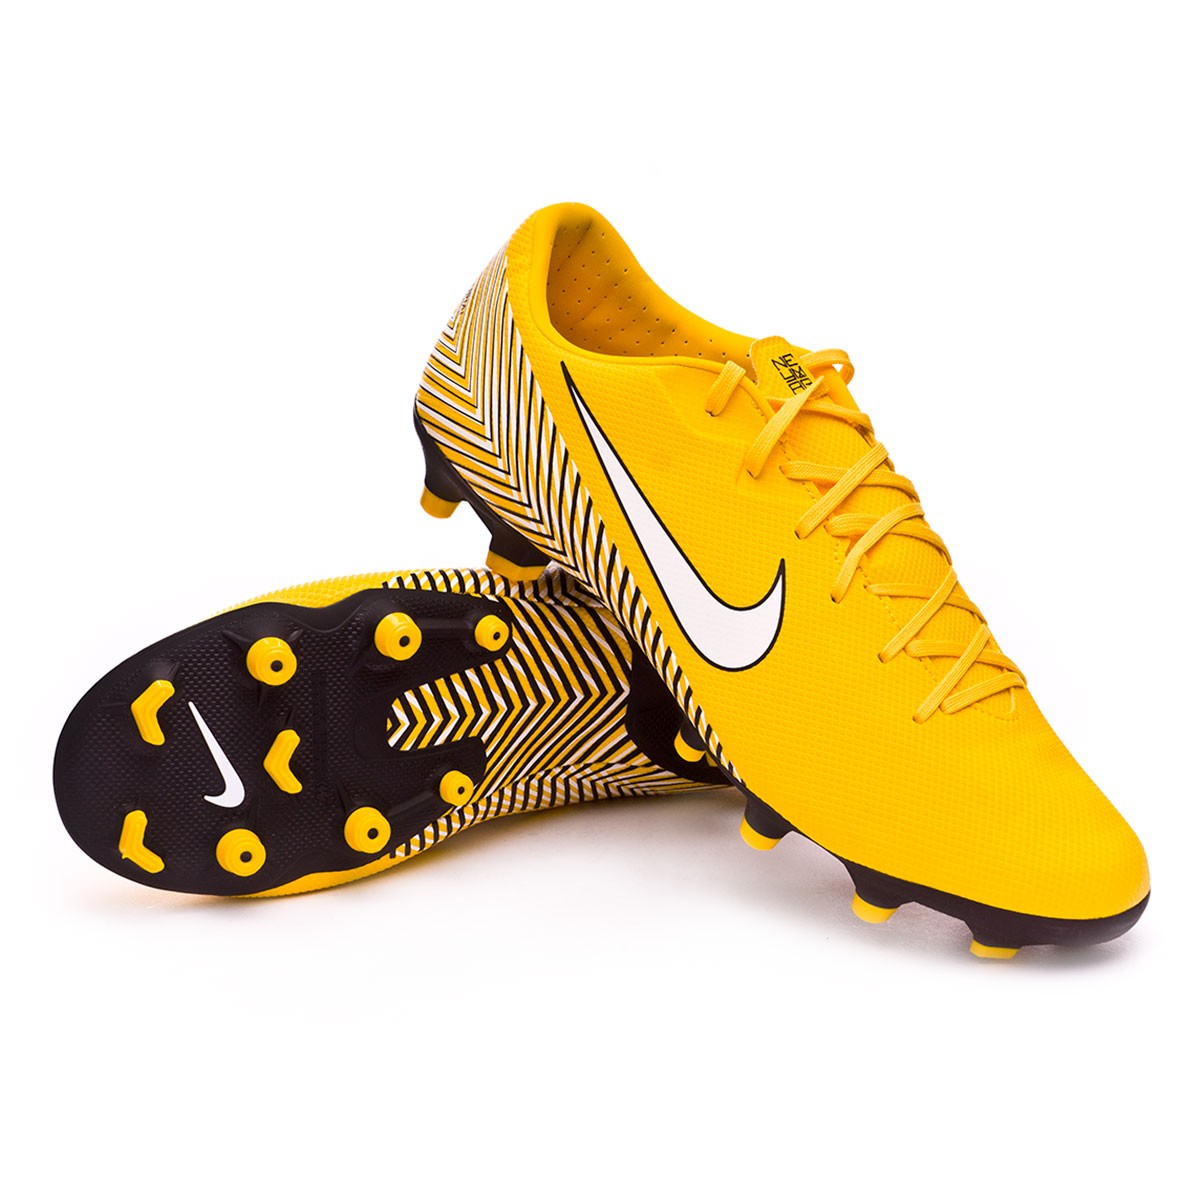 competitive price 1a37a b91b8 Nike Mercurial Vapor XII Academy MG Neymar Football Boots